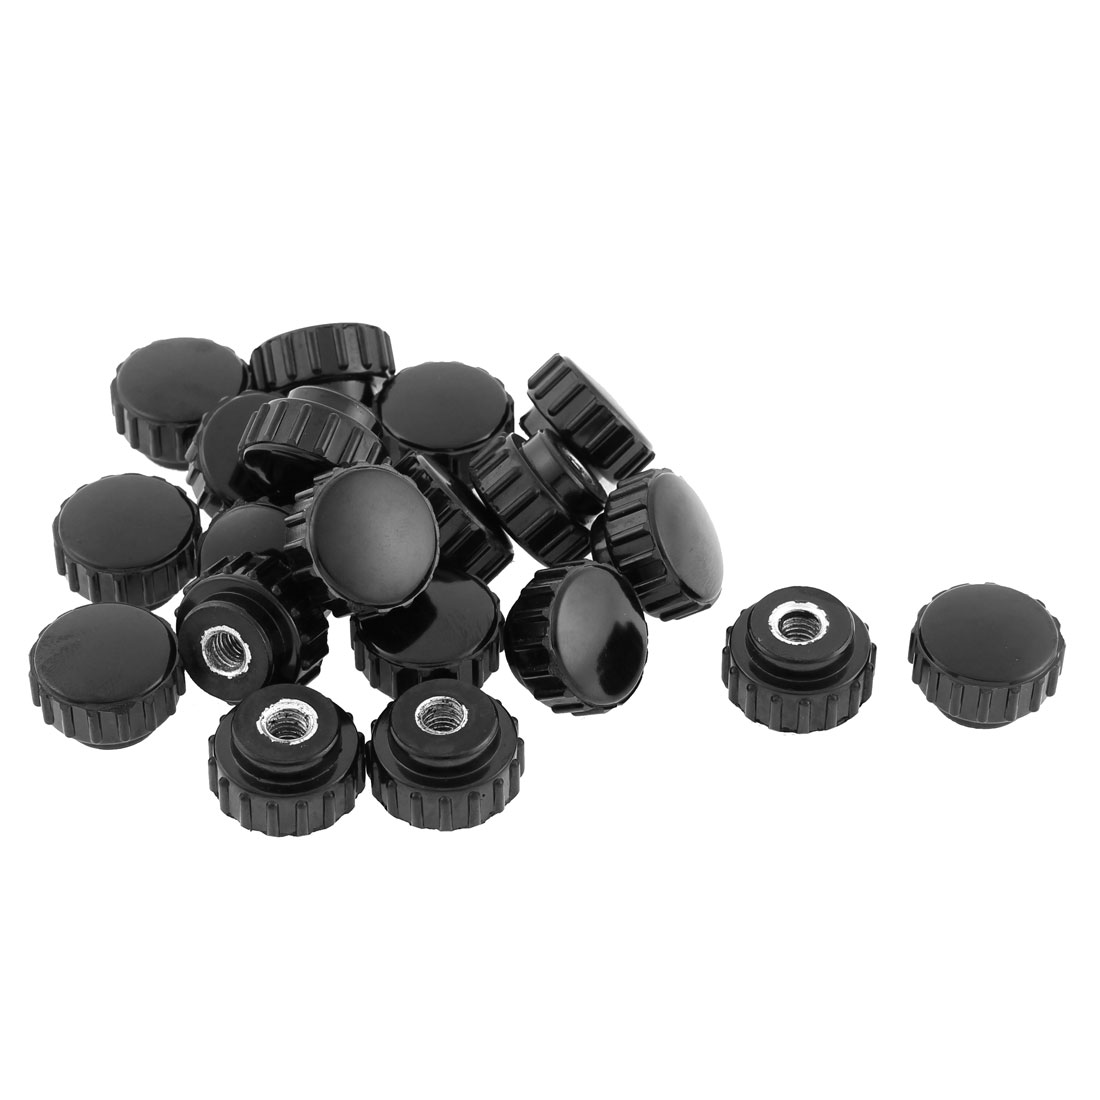 M6 x 22mm Female Thread Plastic Round Head Clamping Knob Jig Black 20pcs